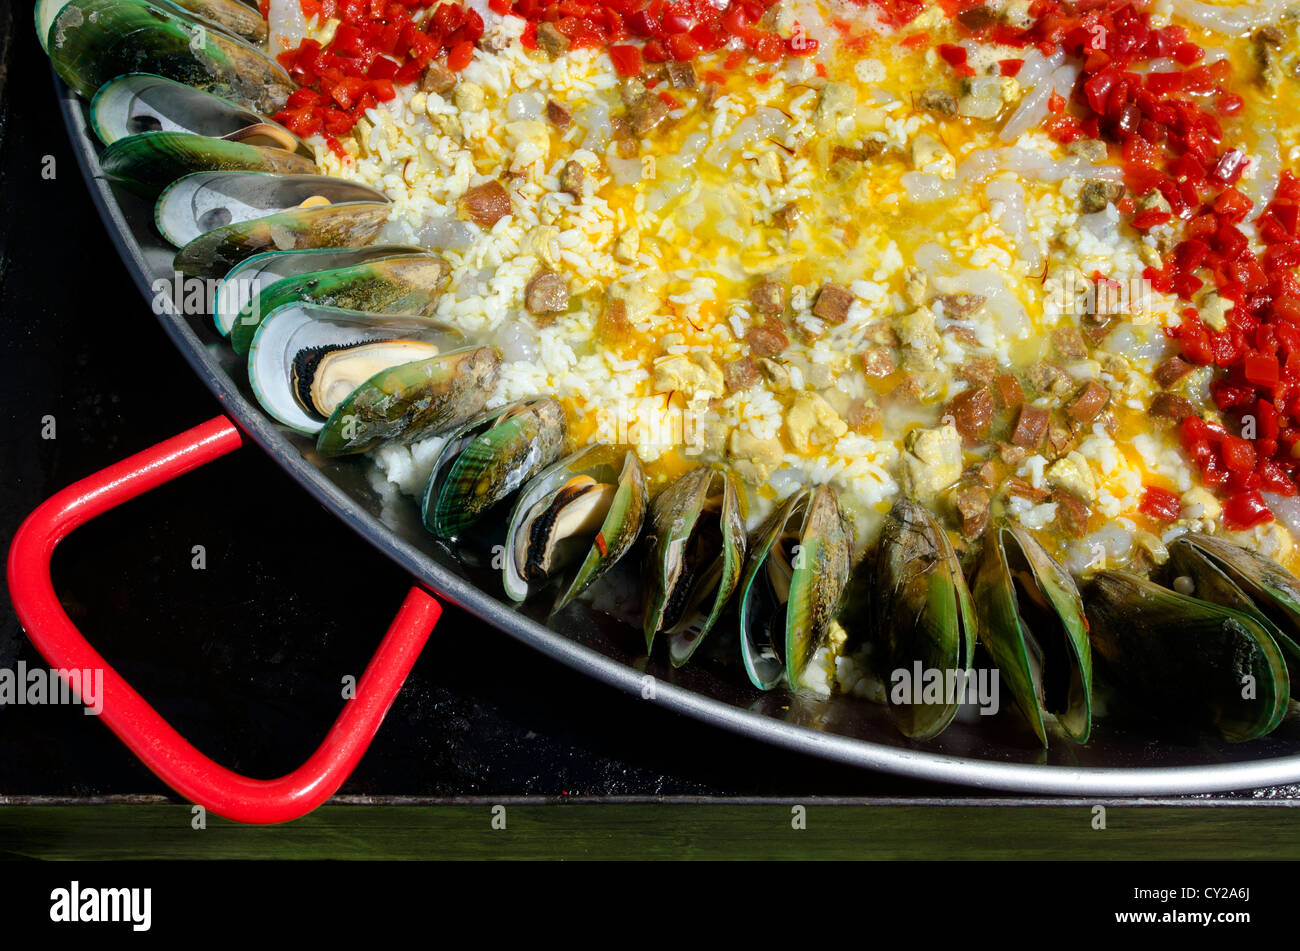 Oysters with vegetables and oriental fried white rice during cooking in a far eastern food restaurant. - Stock Image